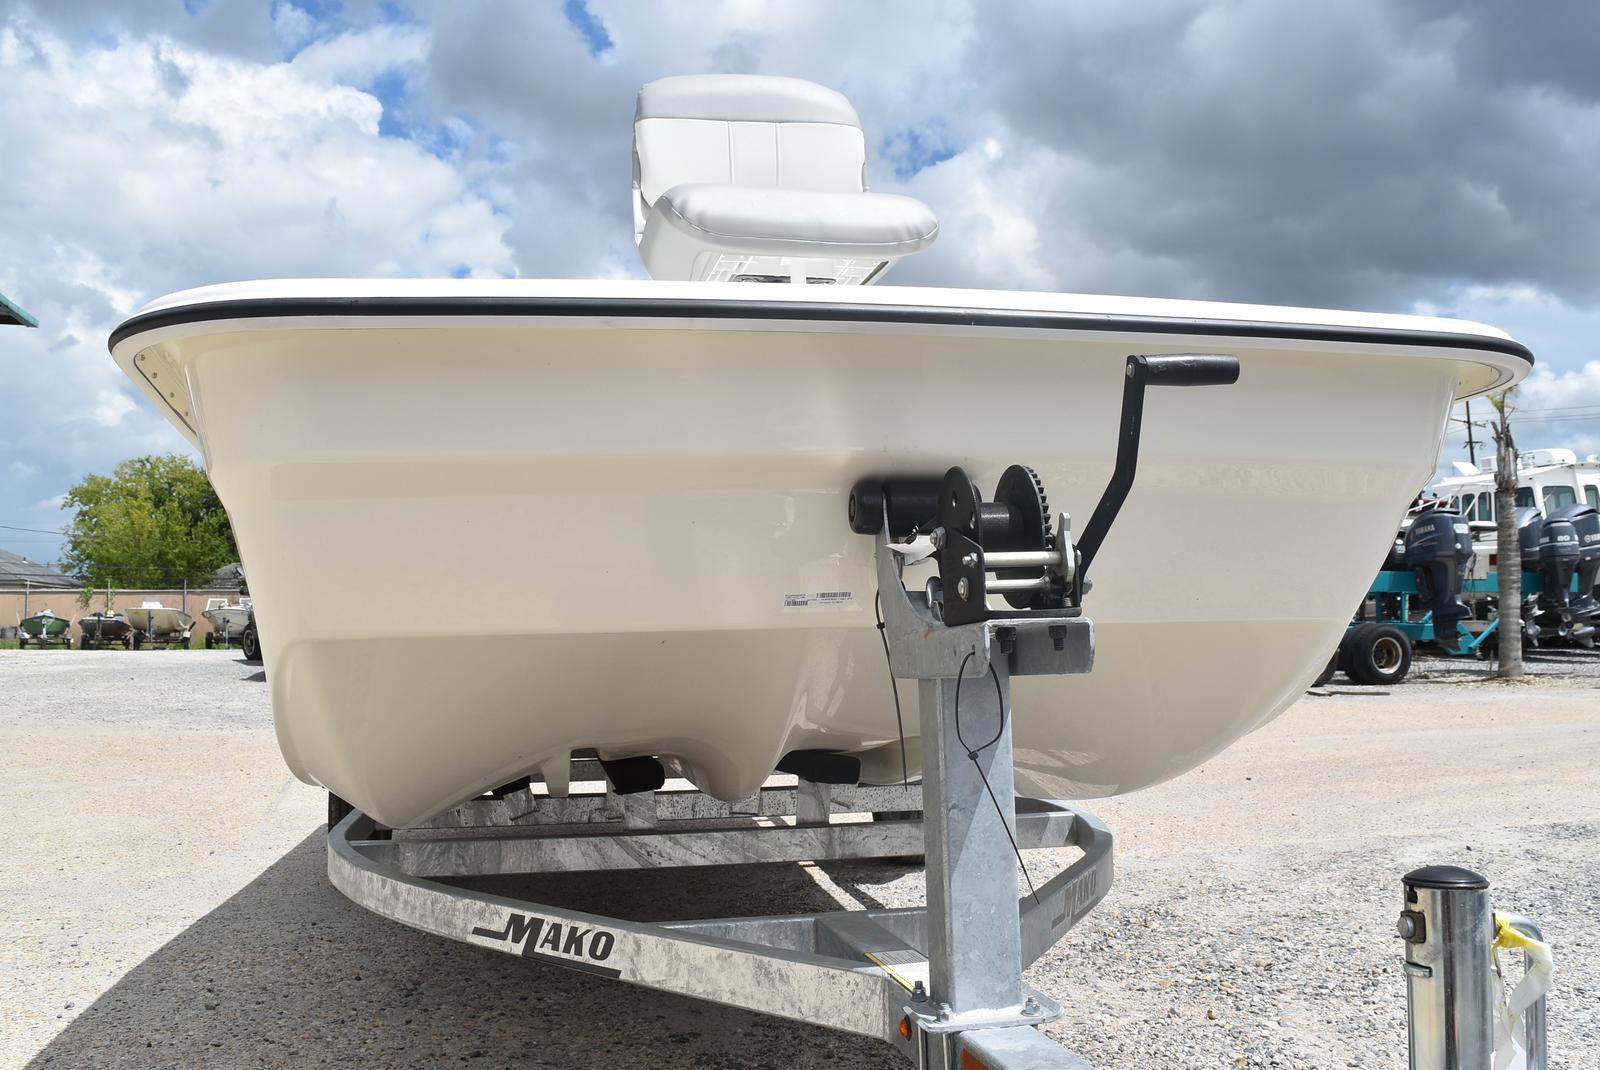 2020 Mako boat for sale, model of the boat is Pro Skiff 17, 75 ELPT & Image # 359 of 702